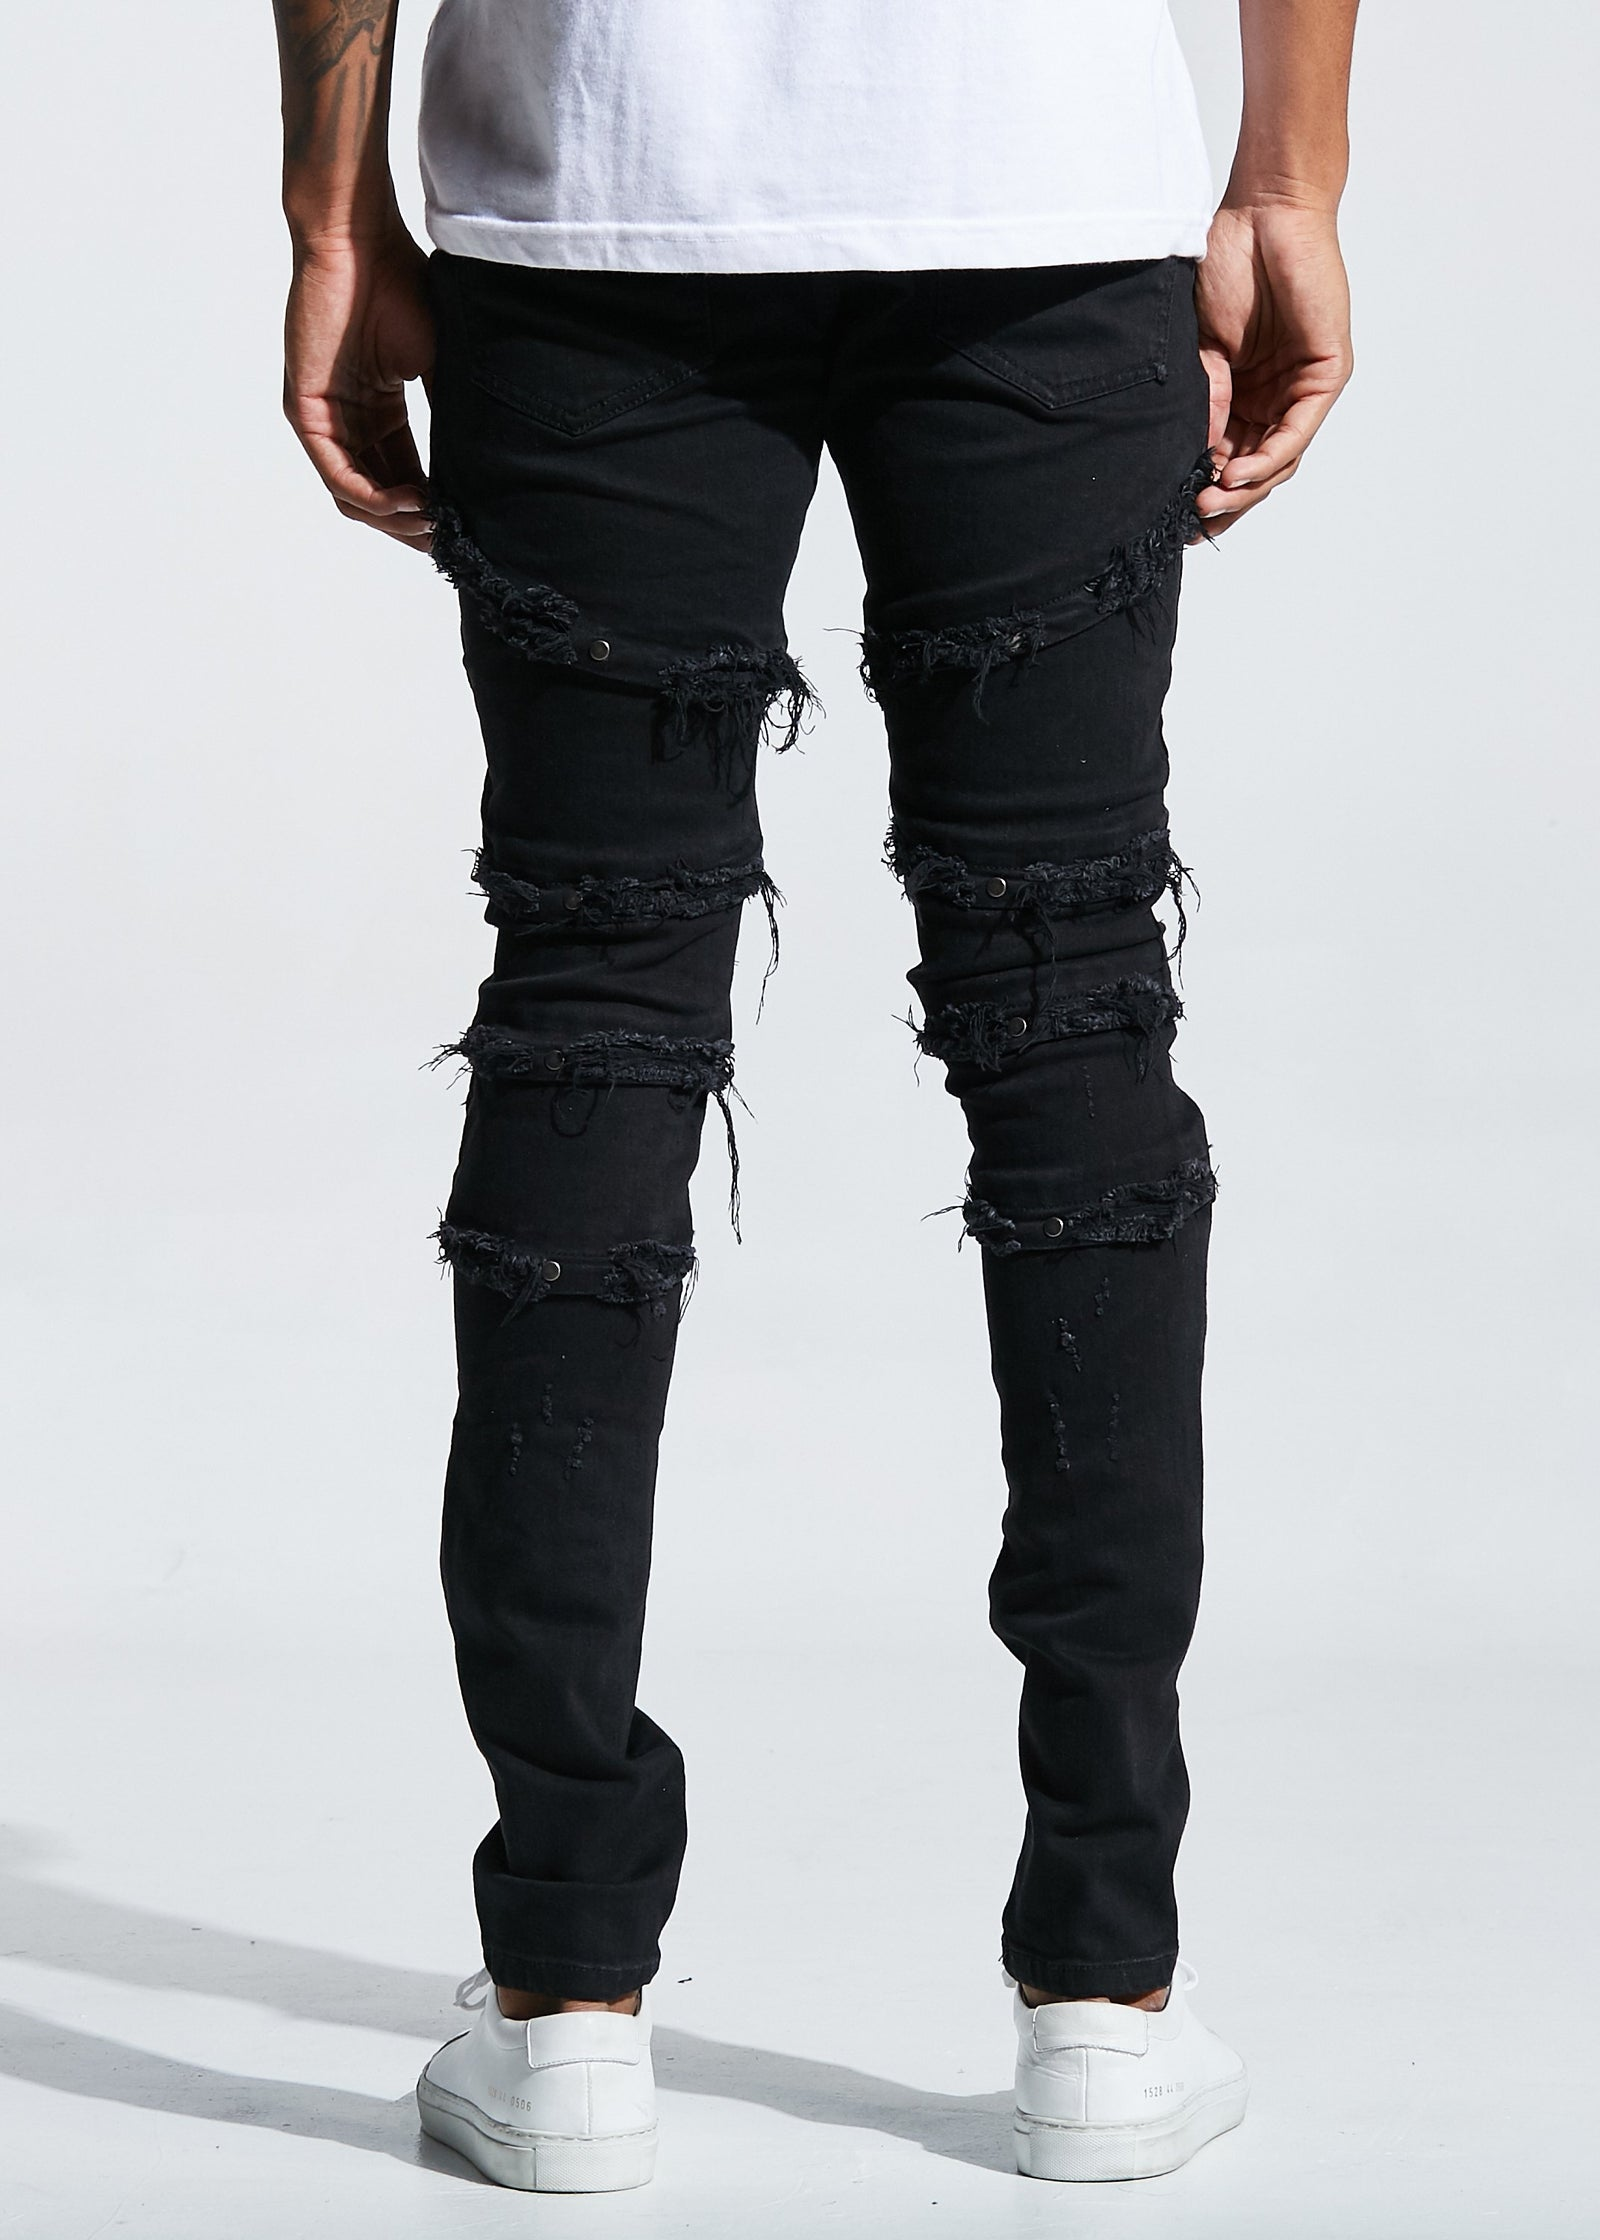 Capone Denim (Black Ripped)